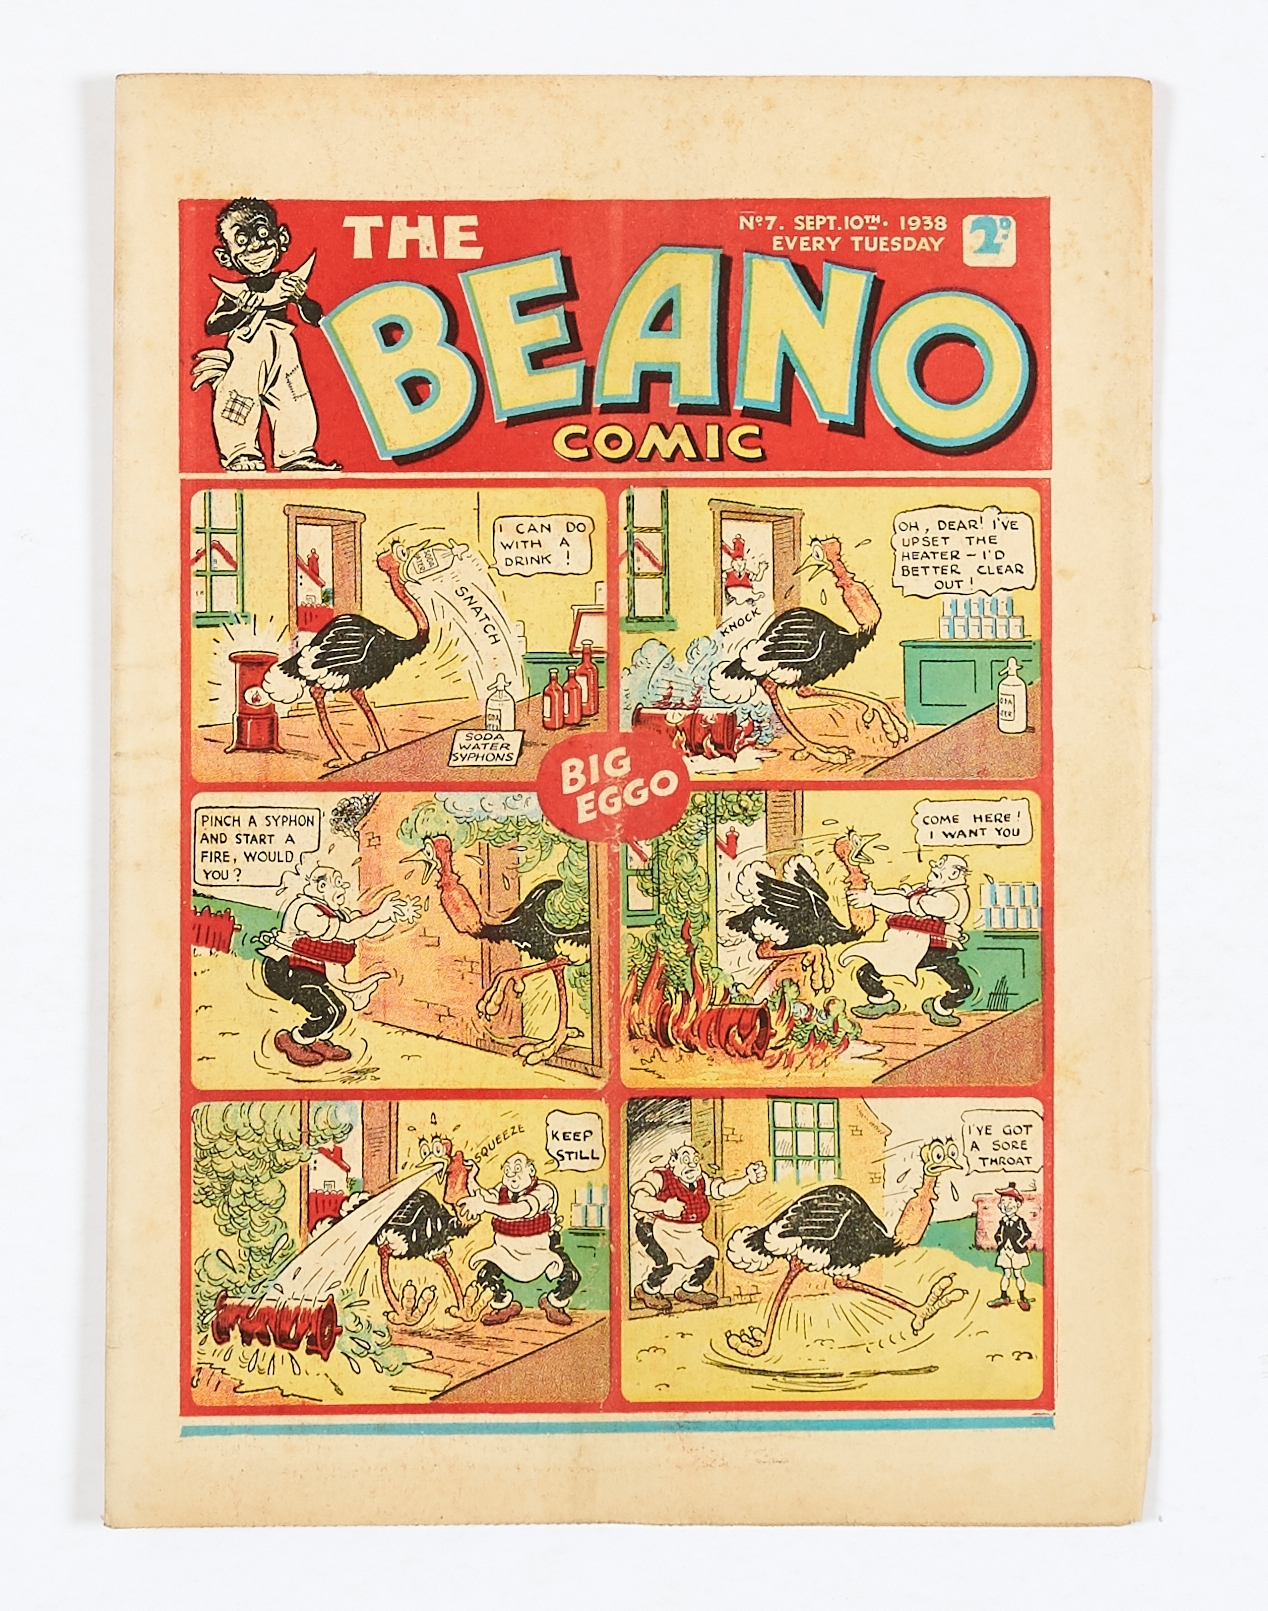 Lot 13 - Beano No 7 (1938). Only a handful of copies known to exist. Bright cover, cream pages, slight